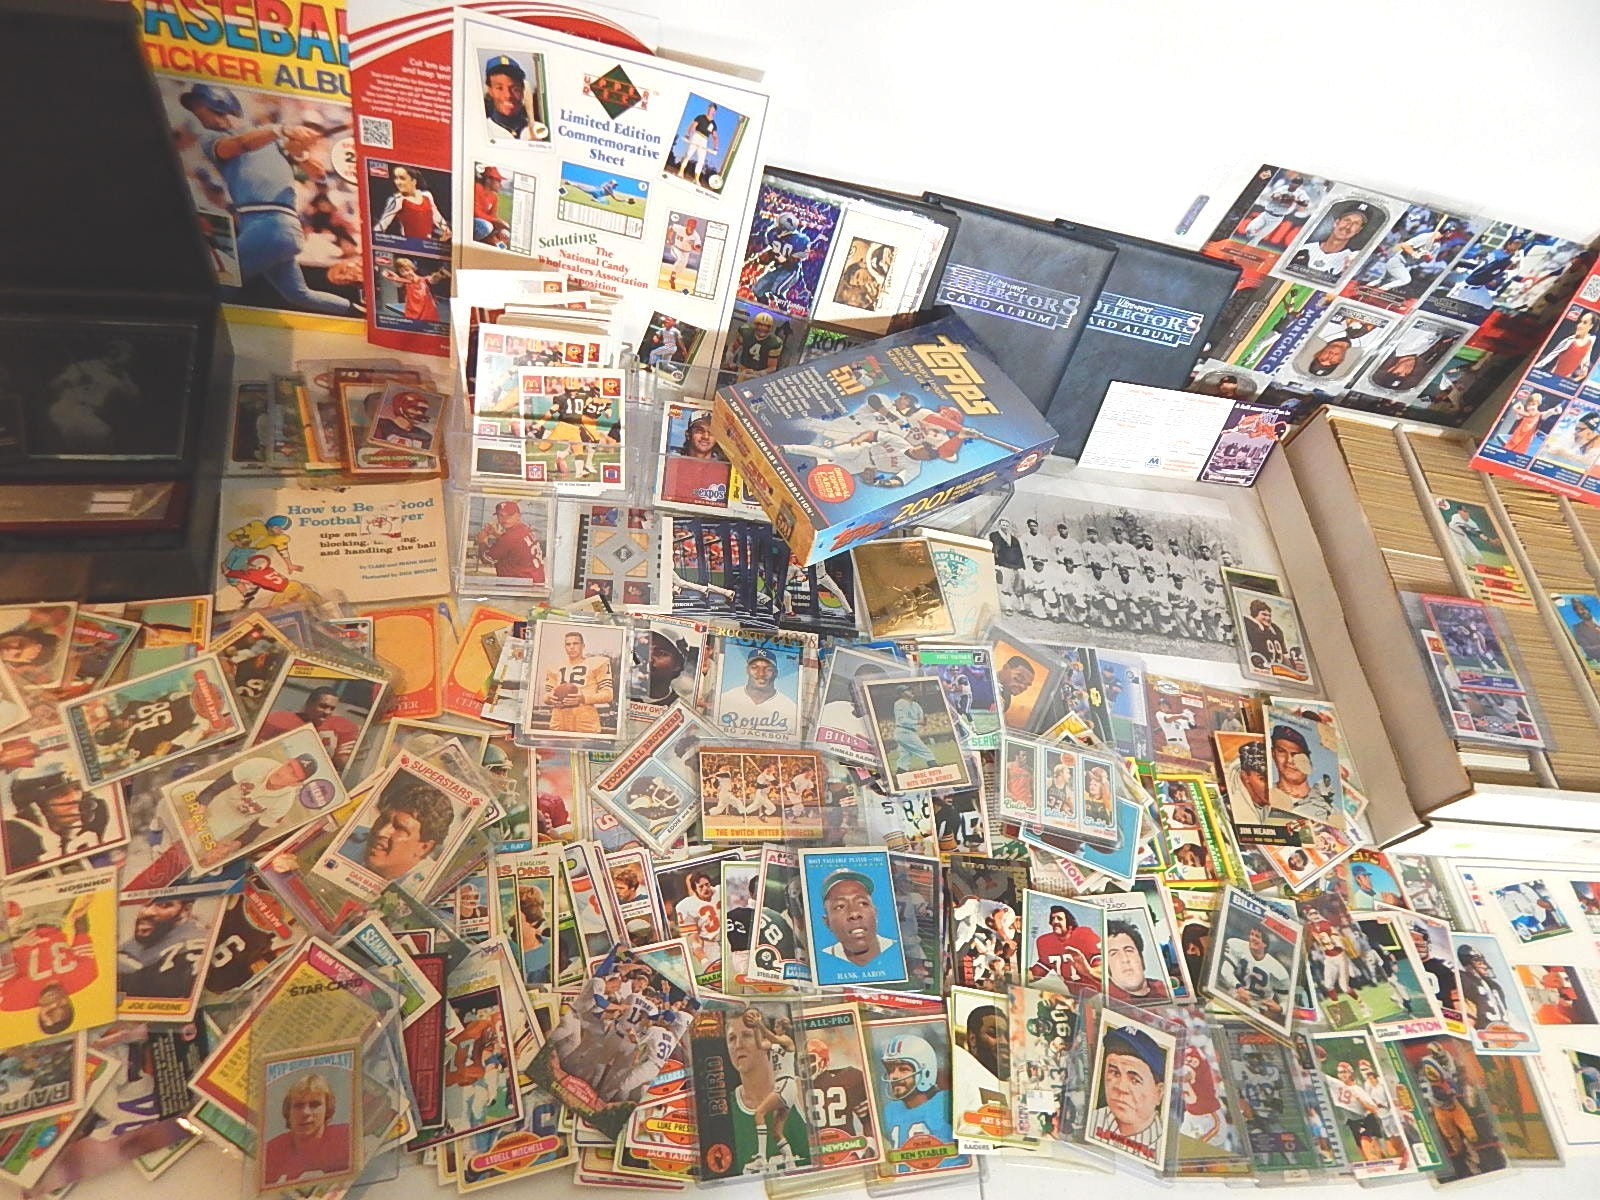 Large Sports Card Collection with Around 4000 Cards - 1962 Mantle, 1961 Aaron